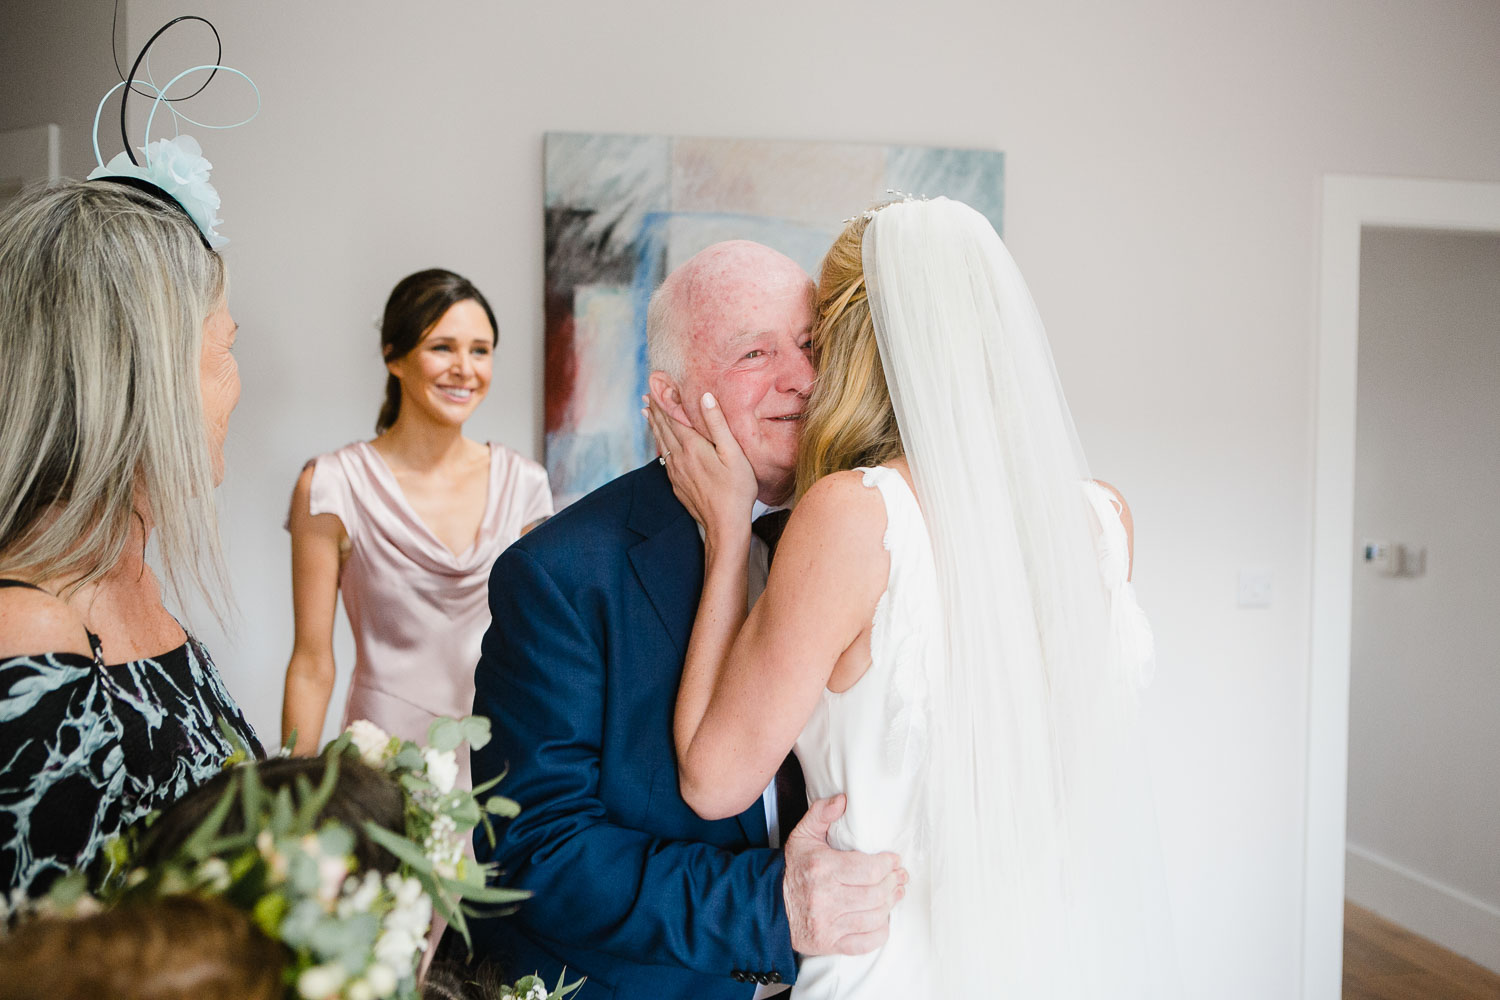 Emotional Photo Of Father And Bride Rosleague Manor